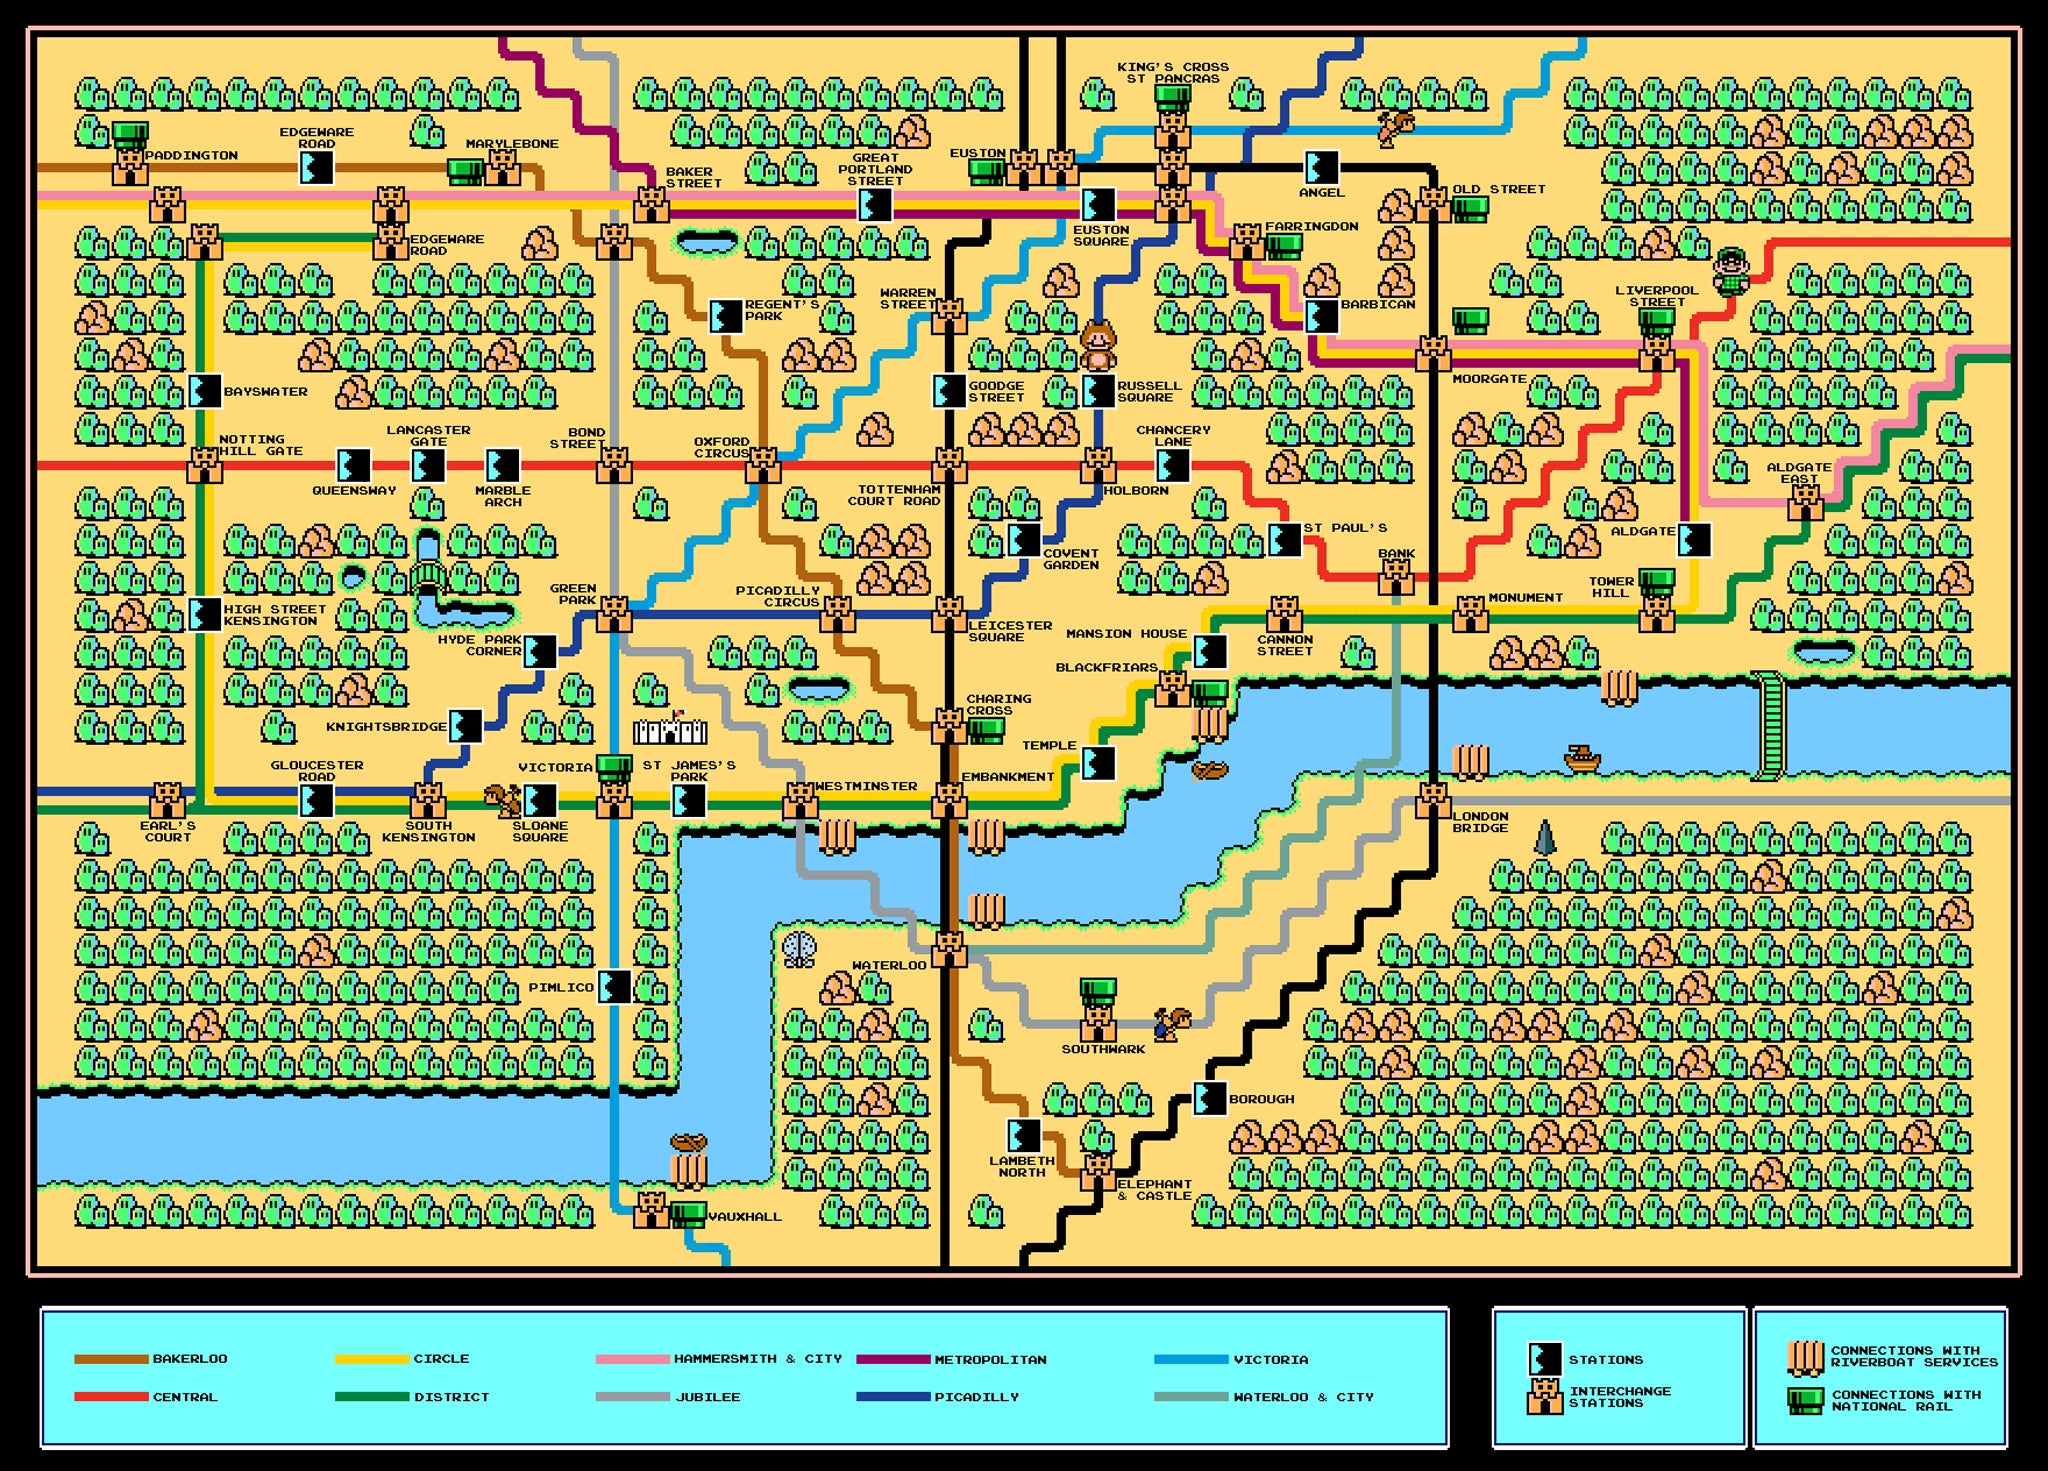 Super Mario Takes The Tube London Underground Map Gets The 8 Bit Nintendo Treatment The Independent The Independent